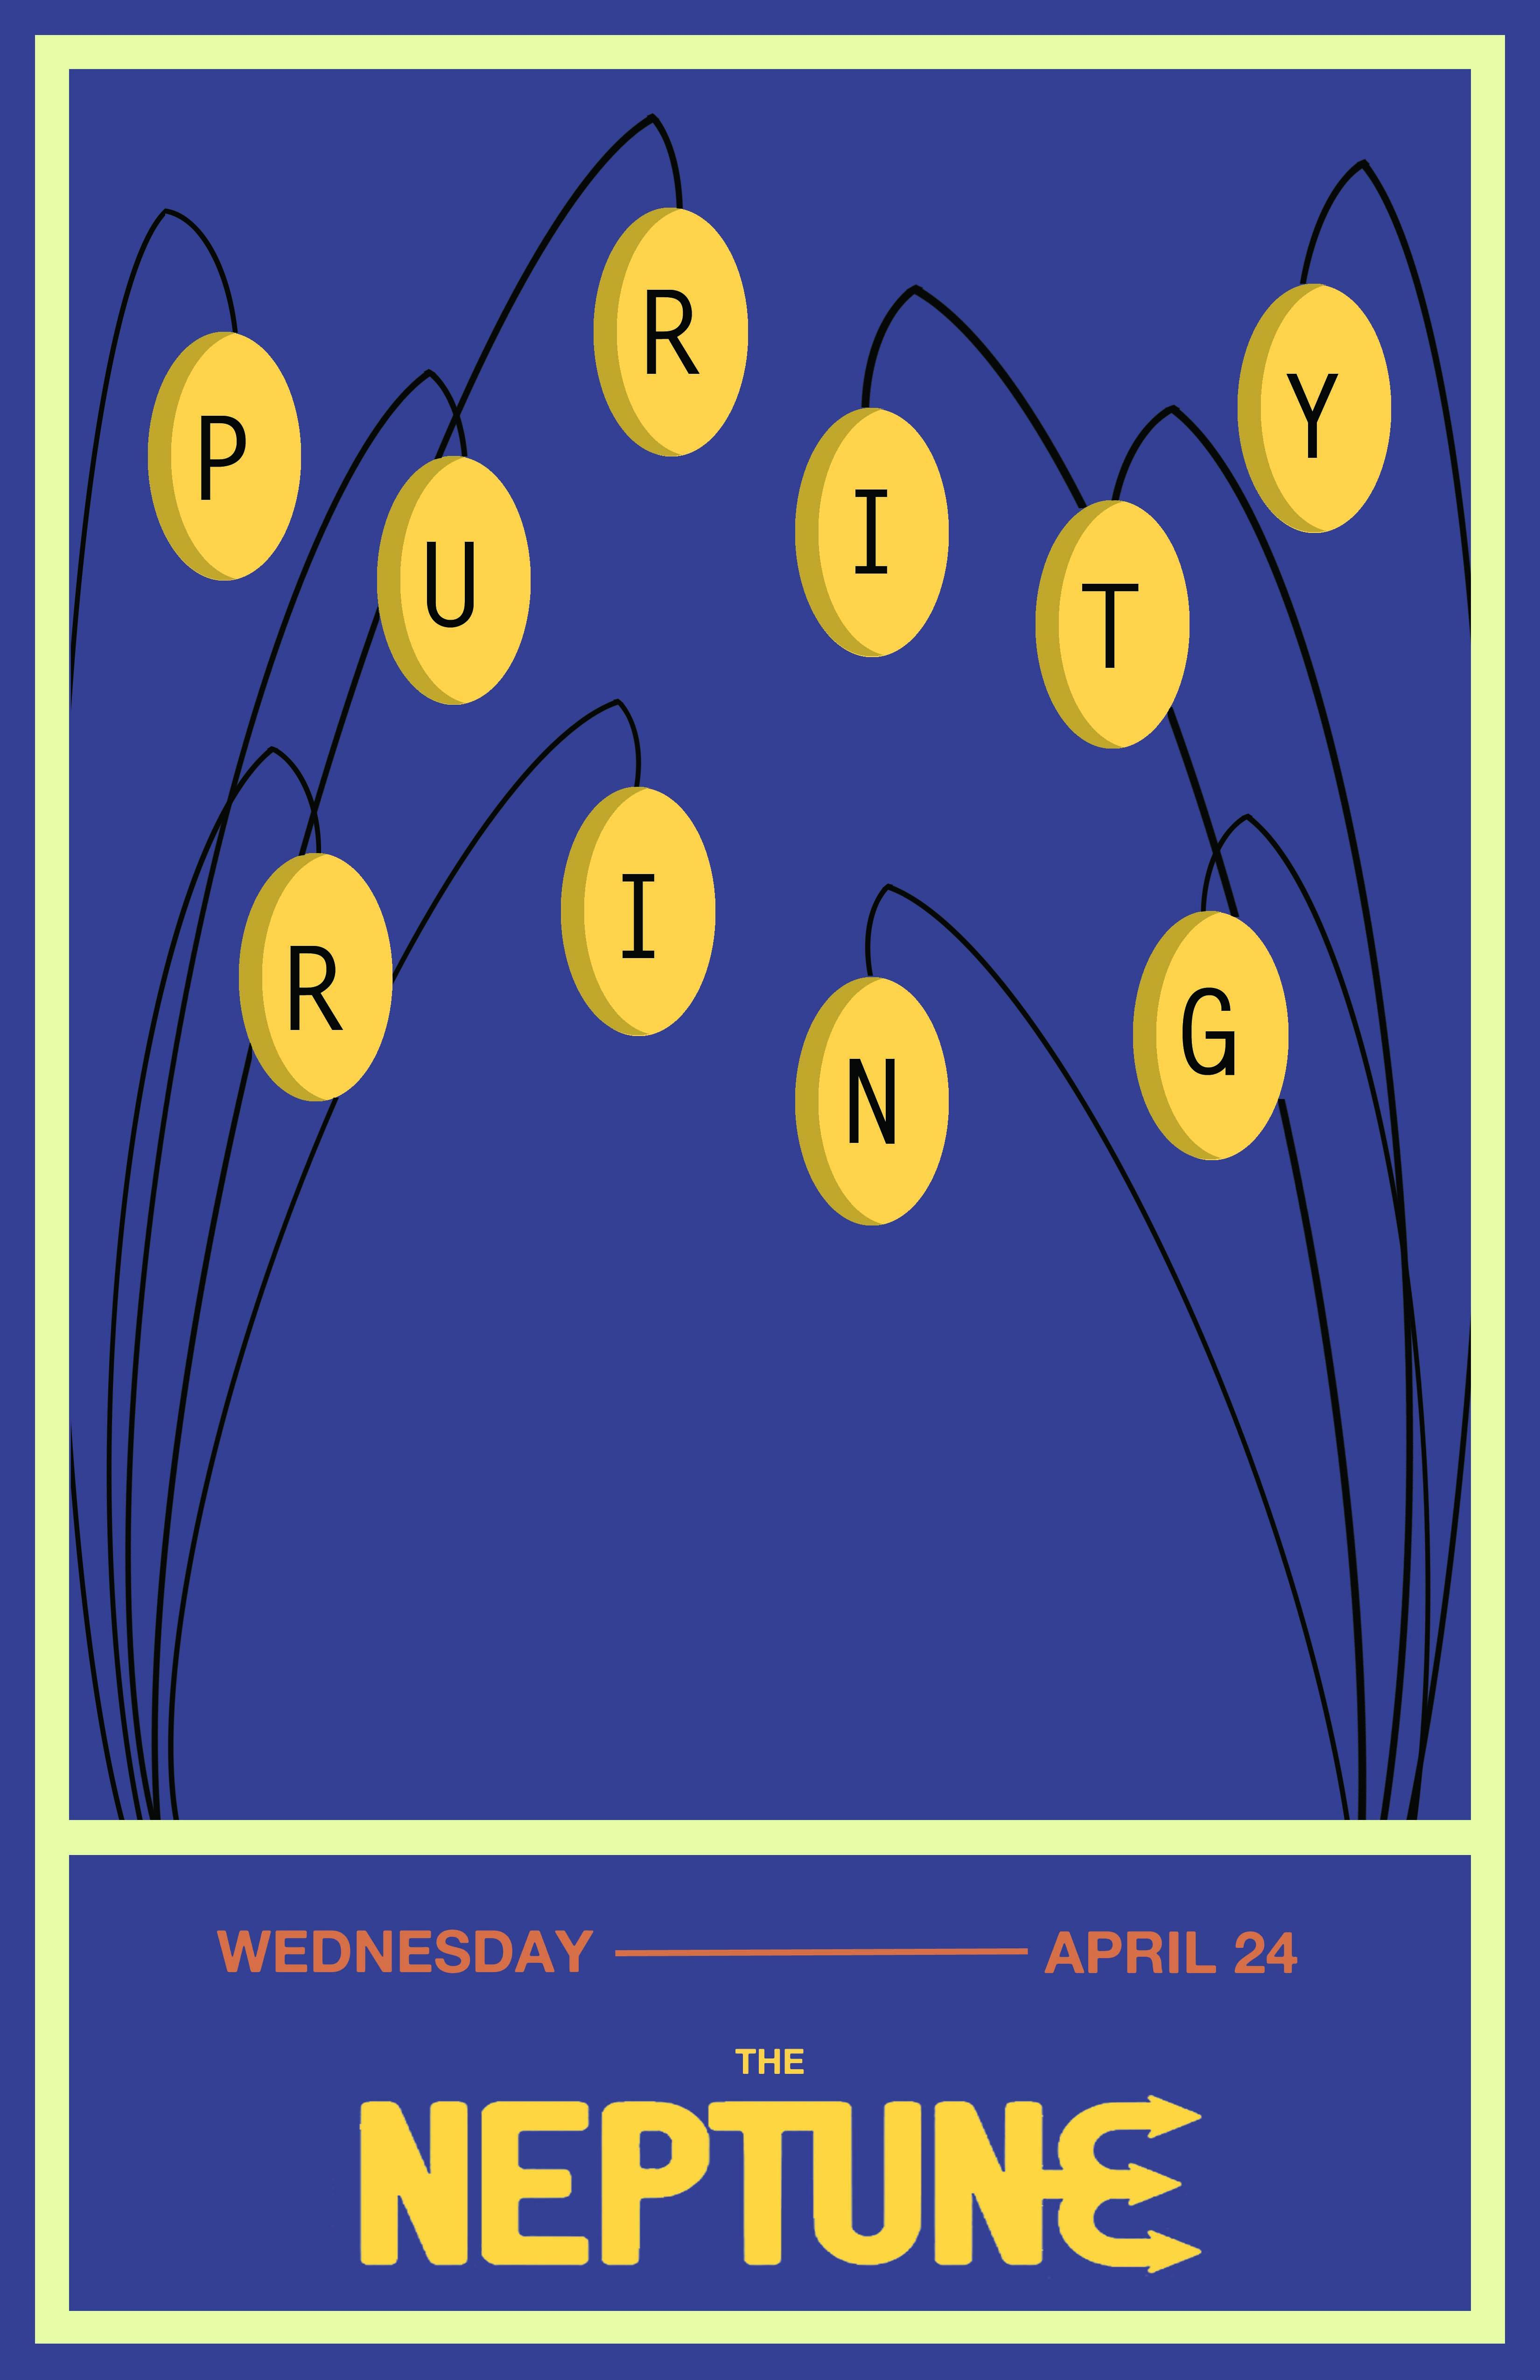 Purity Ring - image 2 - student project